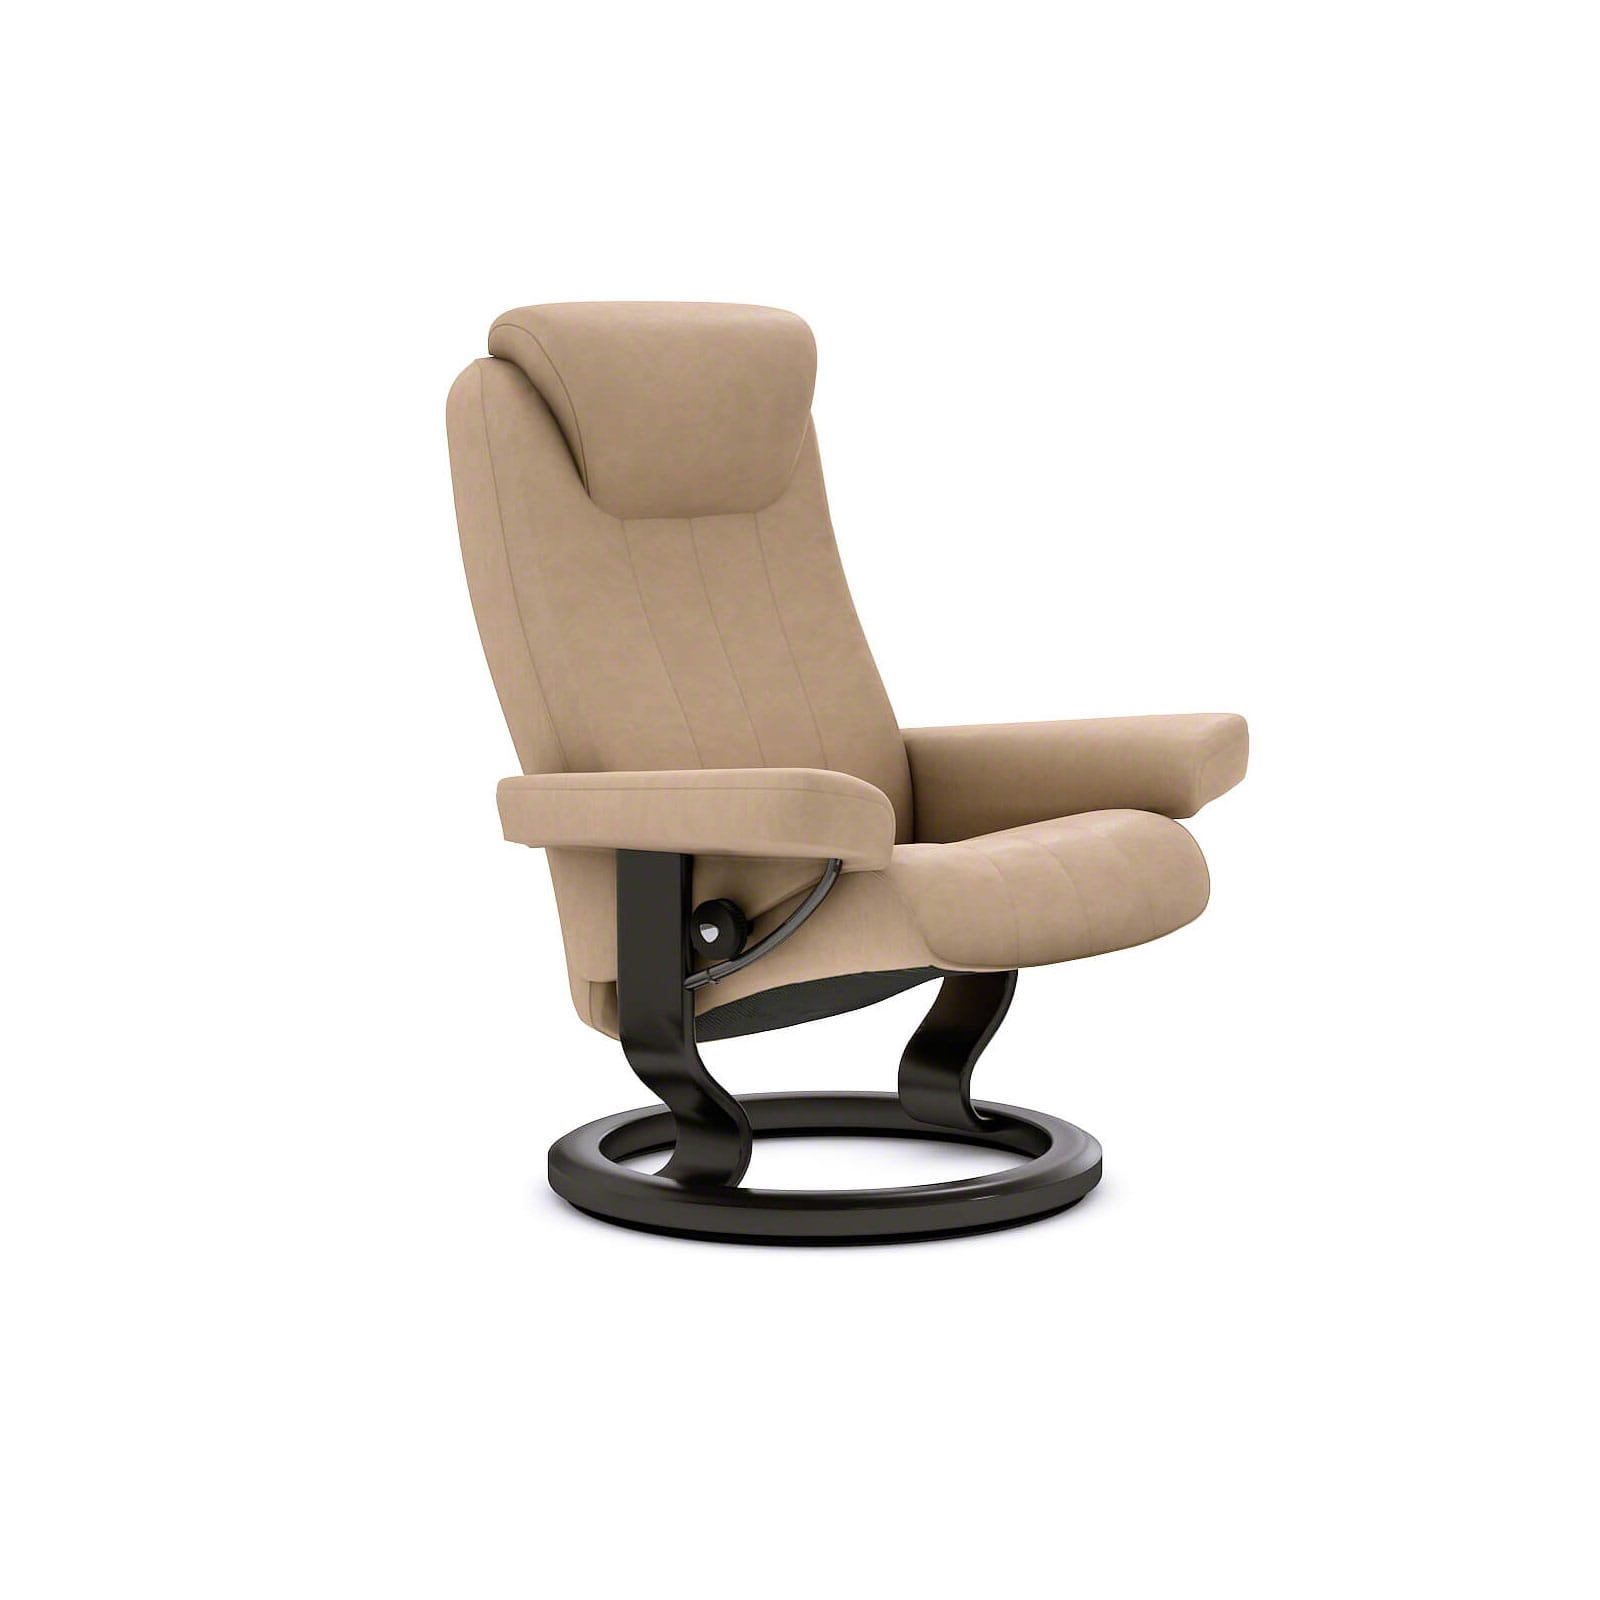 Stressless Sessel Bliss Stressless Bliss Sessel Sand Stressless Möbel Online Shop